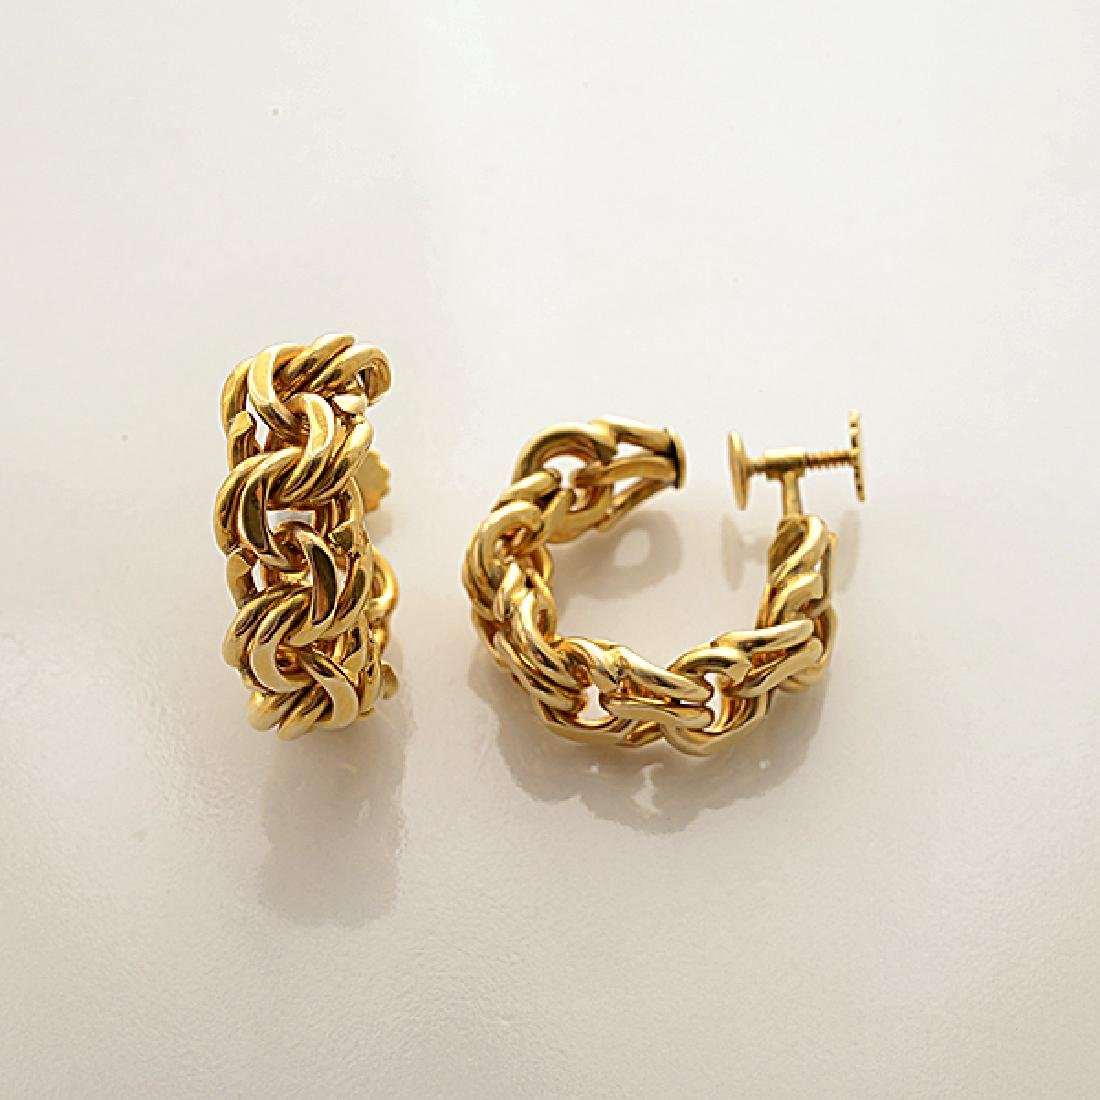 Cartier 14k Yellow Gold Jewelry Suite. - 5